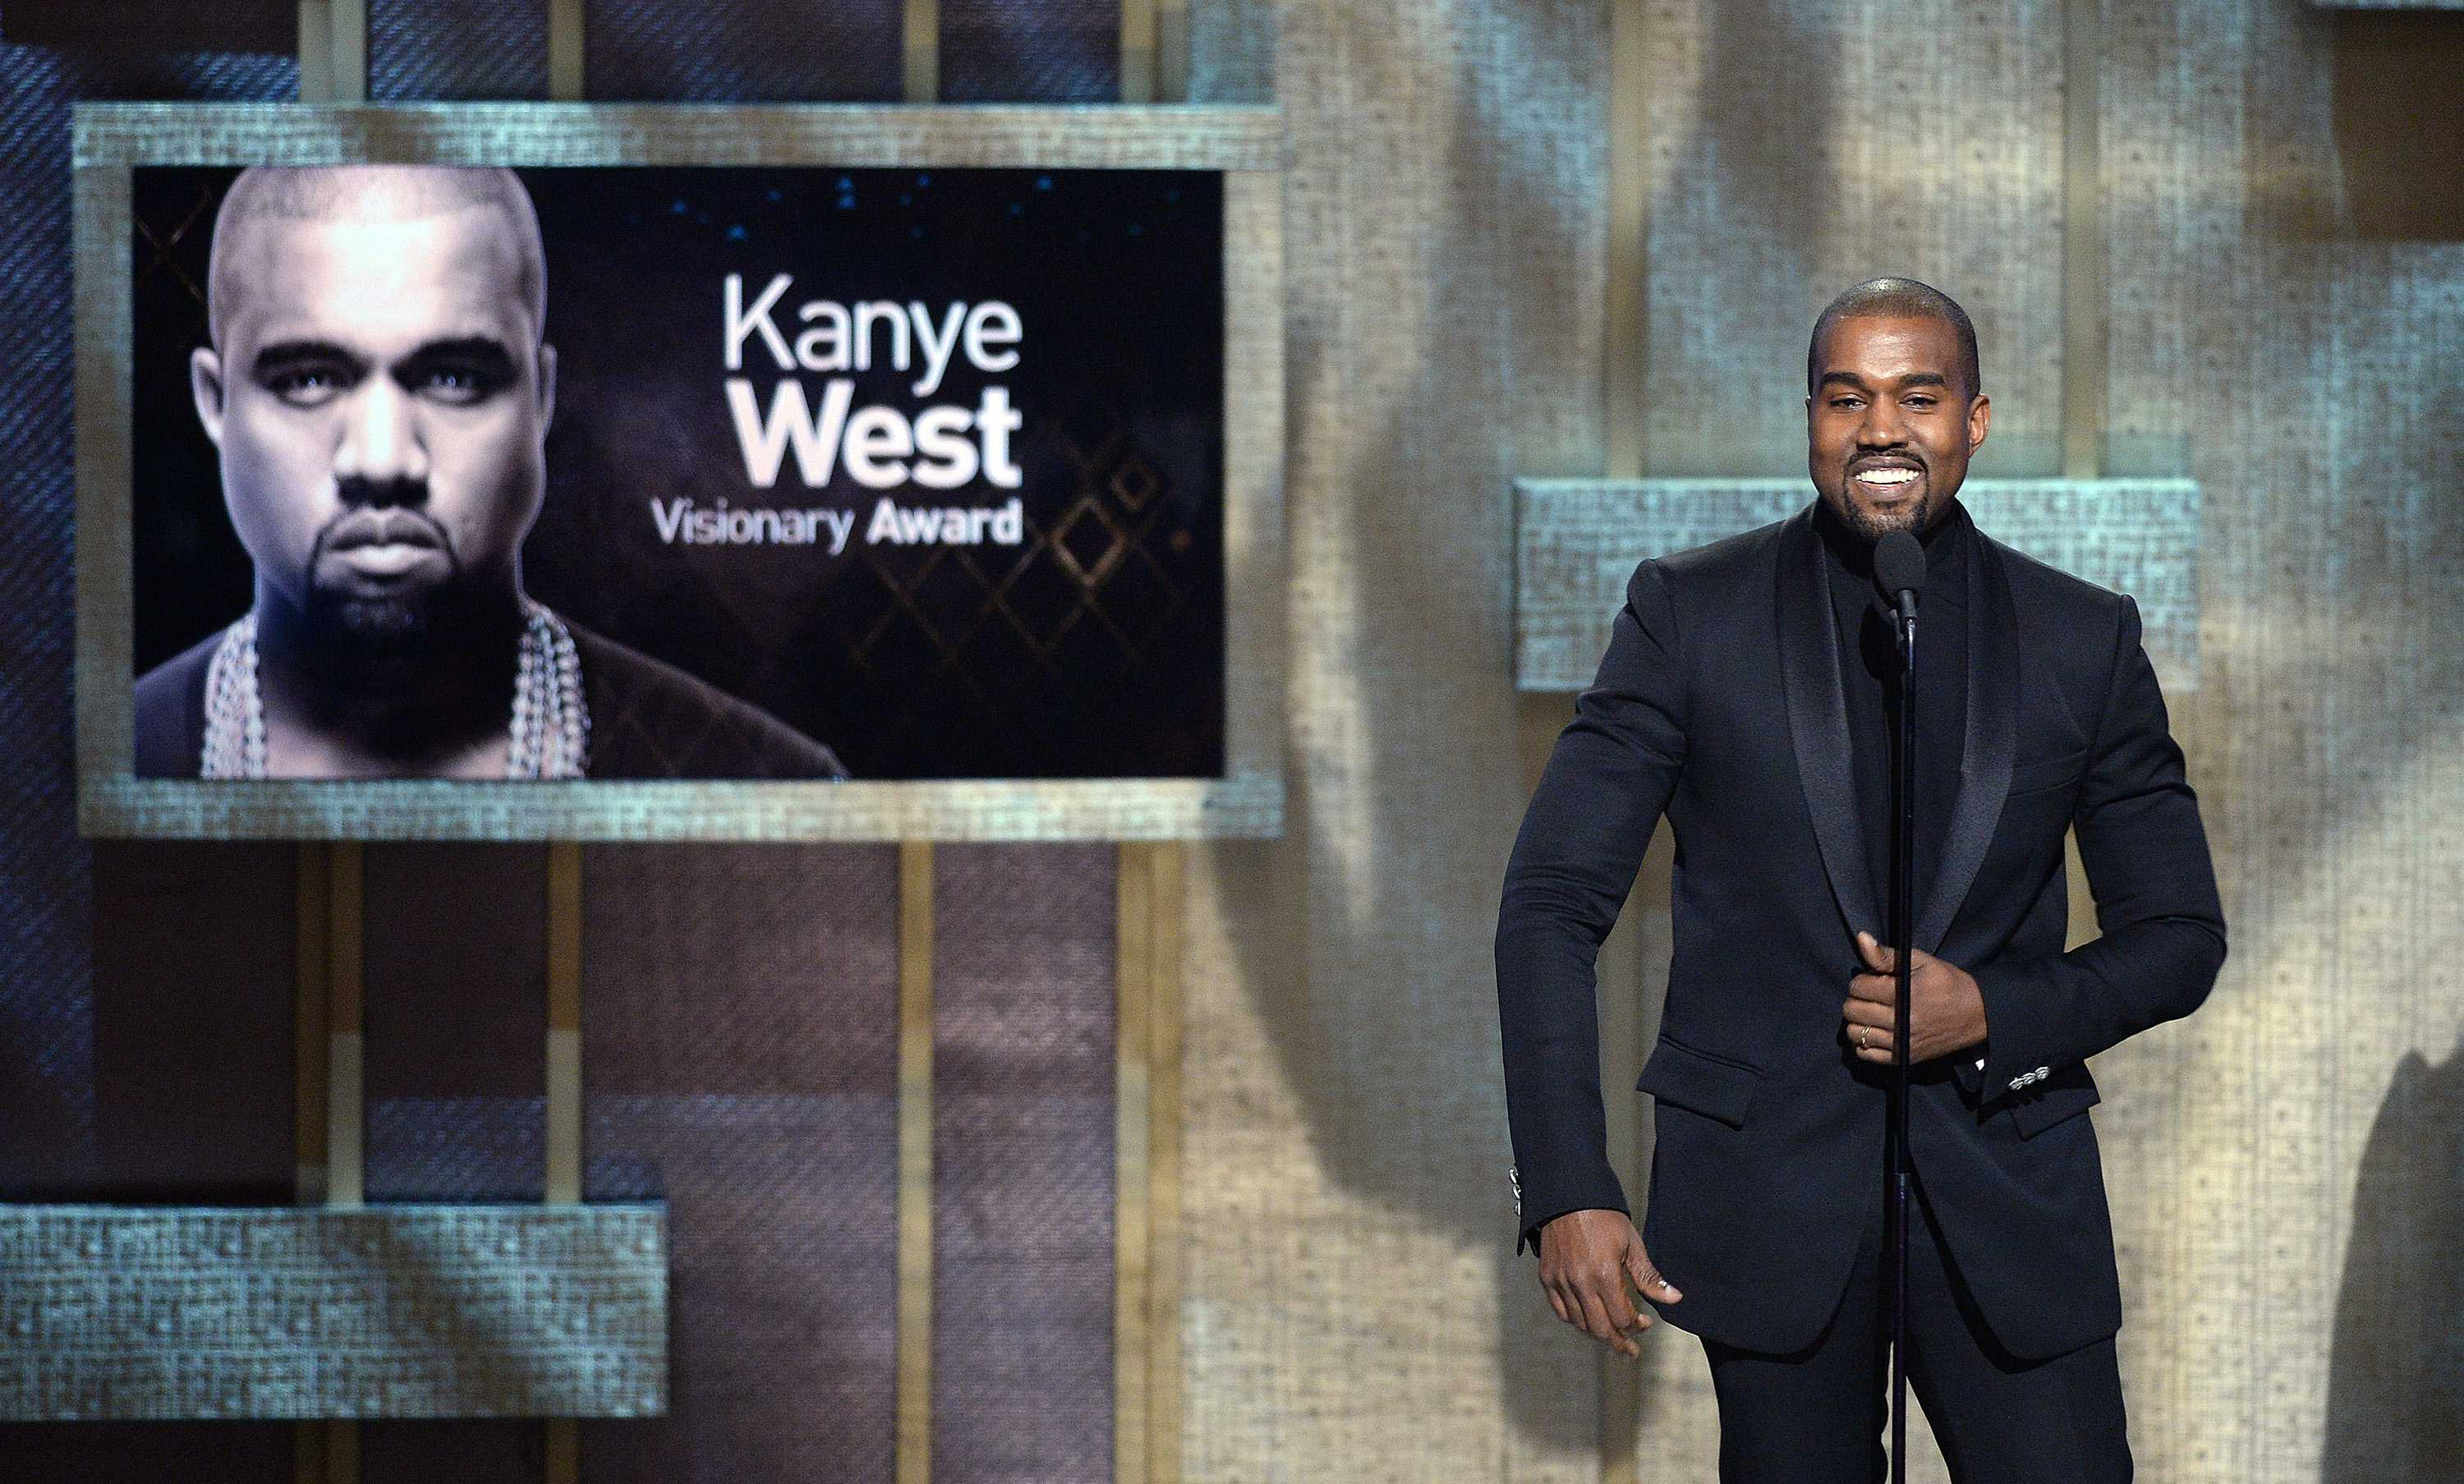 Kanye+West+onstage+at+BET+Honors+2015+at+the+Warner+Theatre+in+Washington%2C+D.C.%2C+on+Saturday%2C+Jan.+24%2C+2015.+%28Olivier+Douliery%2FAbaca+Press%2FTNS%29